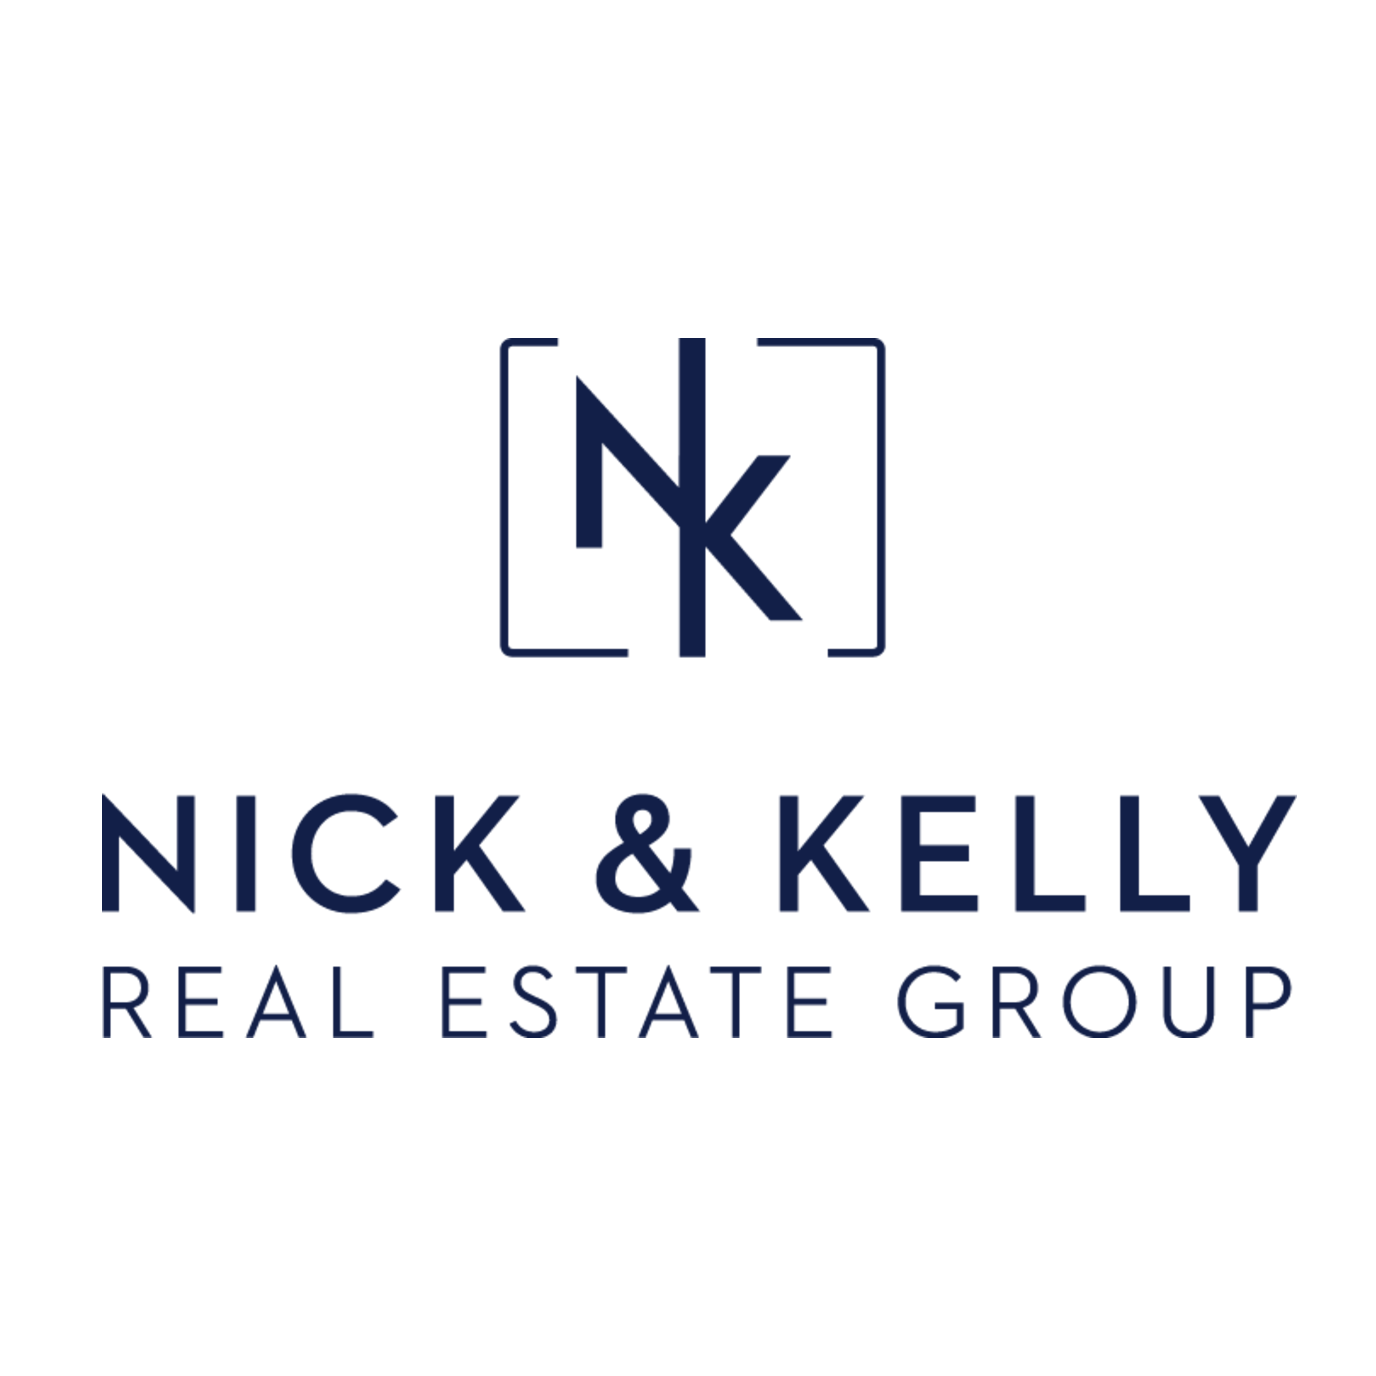 Nick & Kelly Real Estate Group